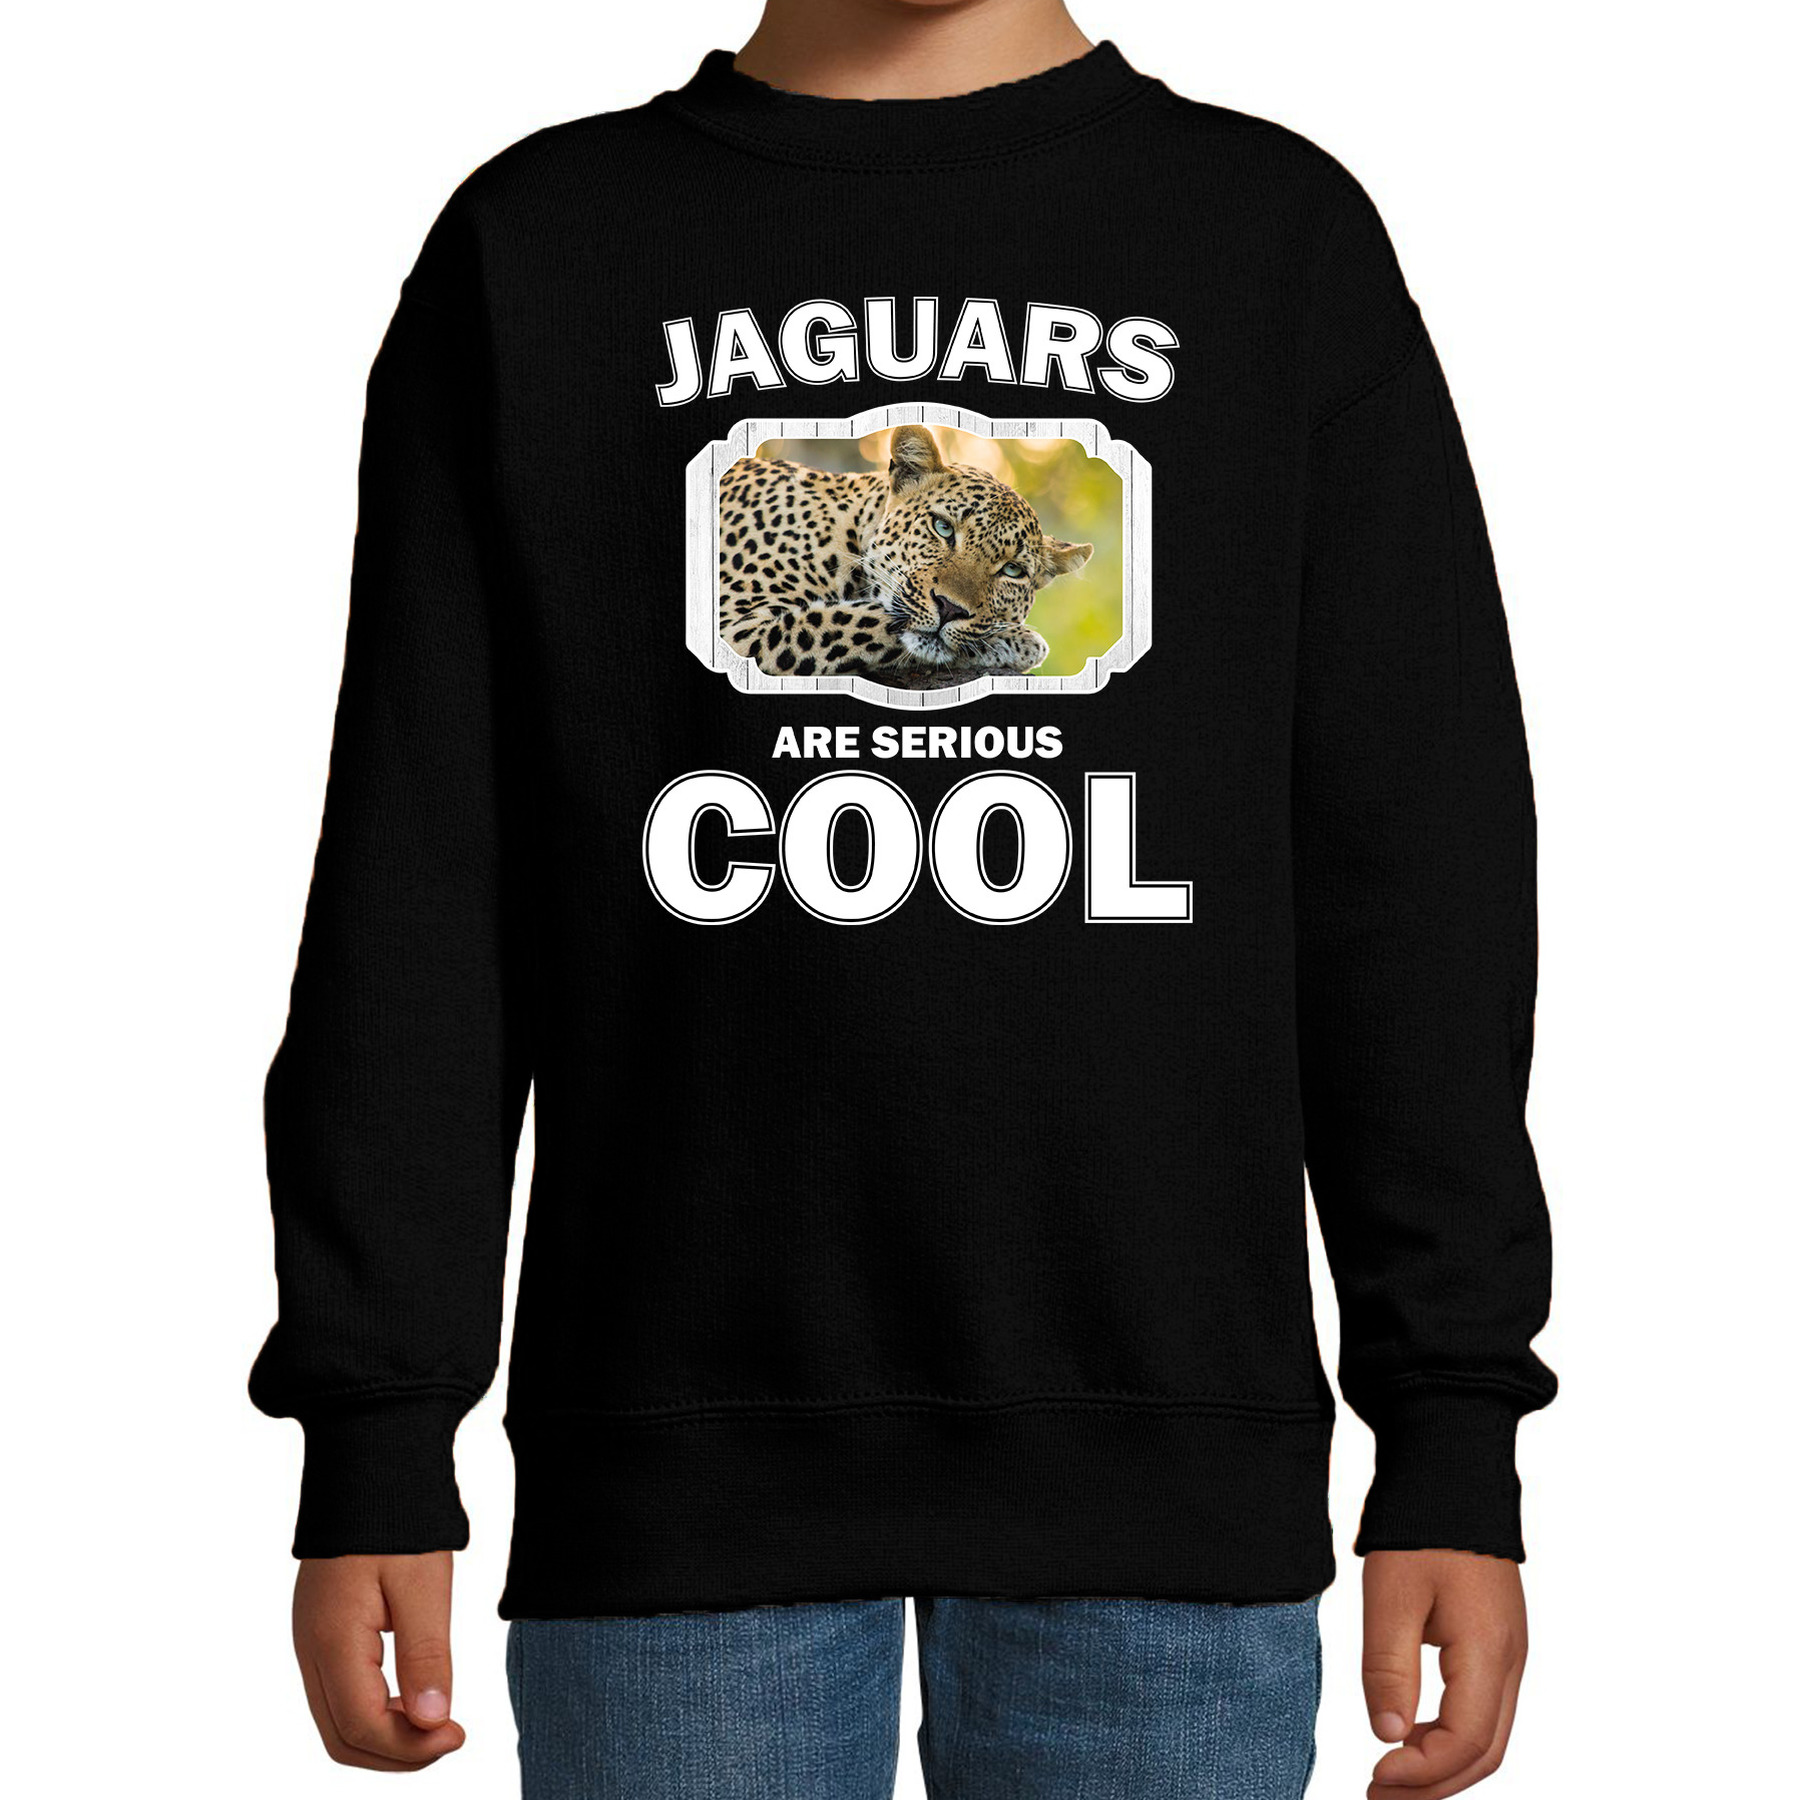 Sweater jaguars are serious cool zwart kinderen - jaguars/ luipaarden/ luipaard trui